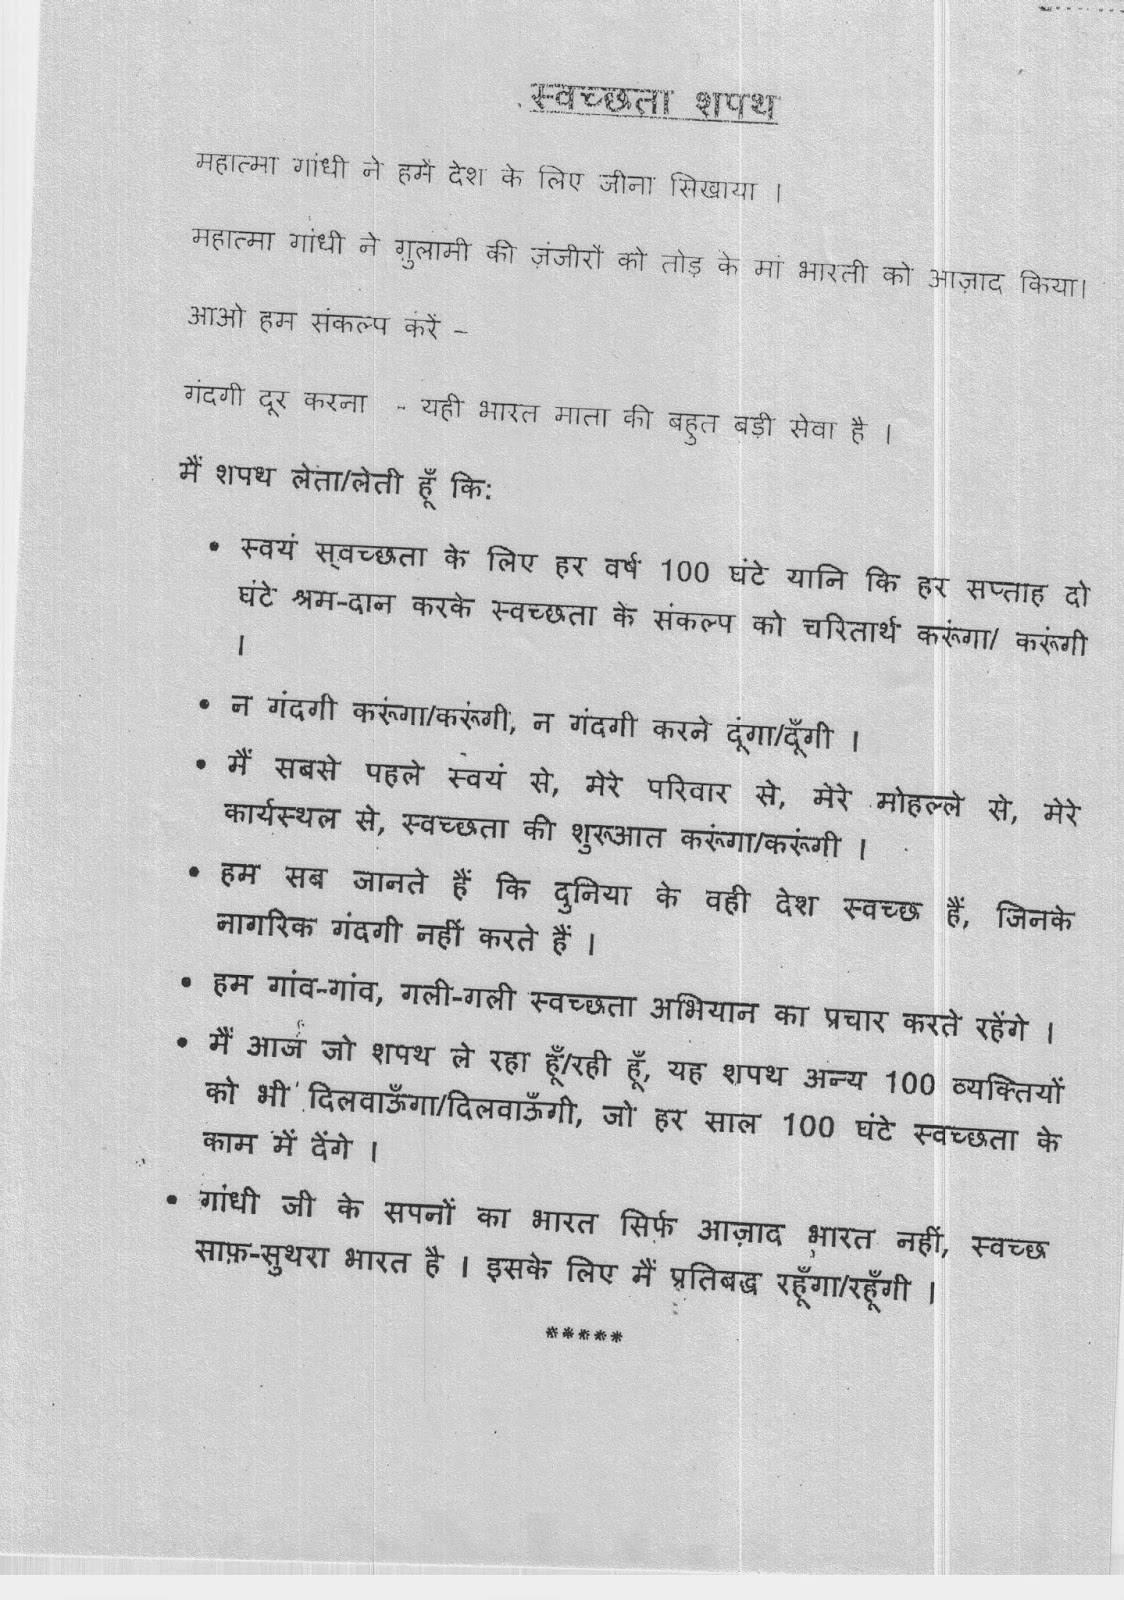 Ekal parivar essay writer: Judaism primary homework help